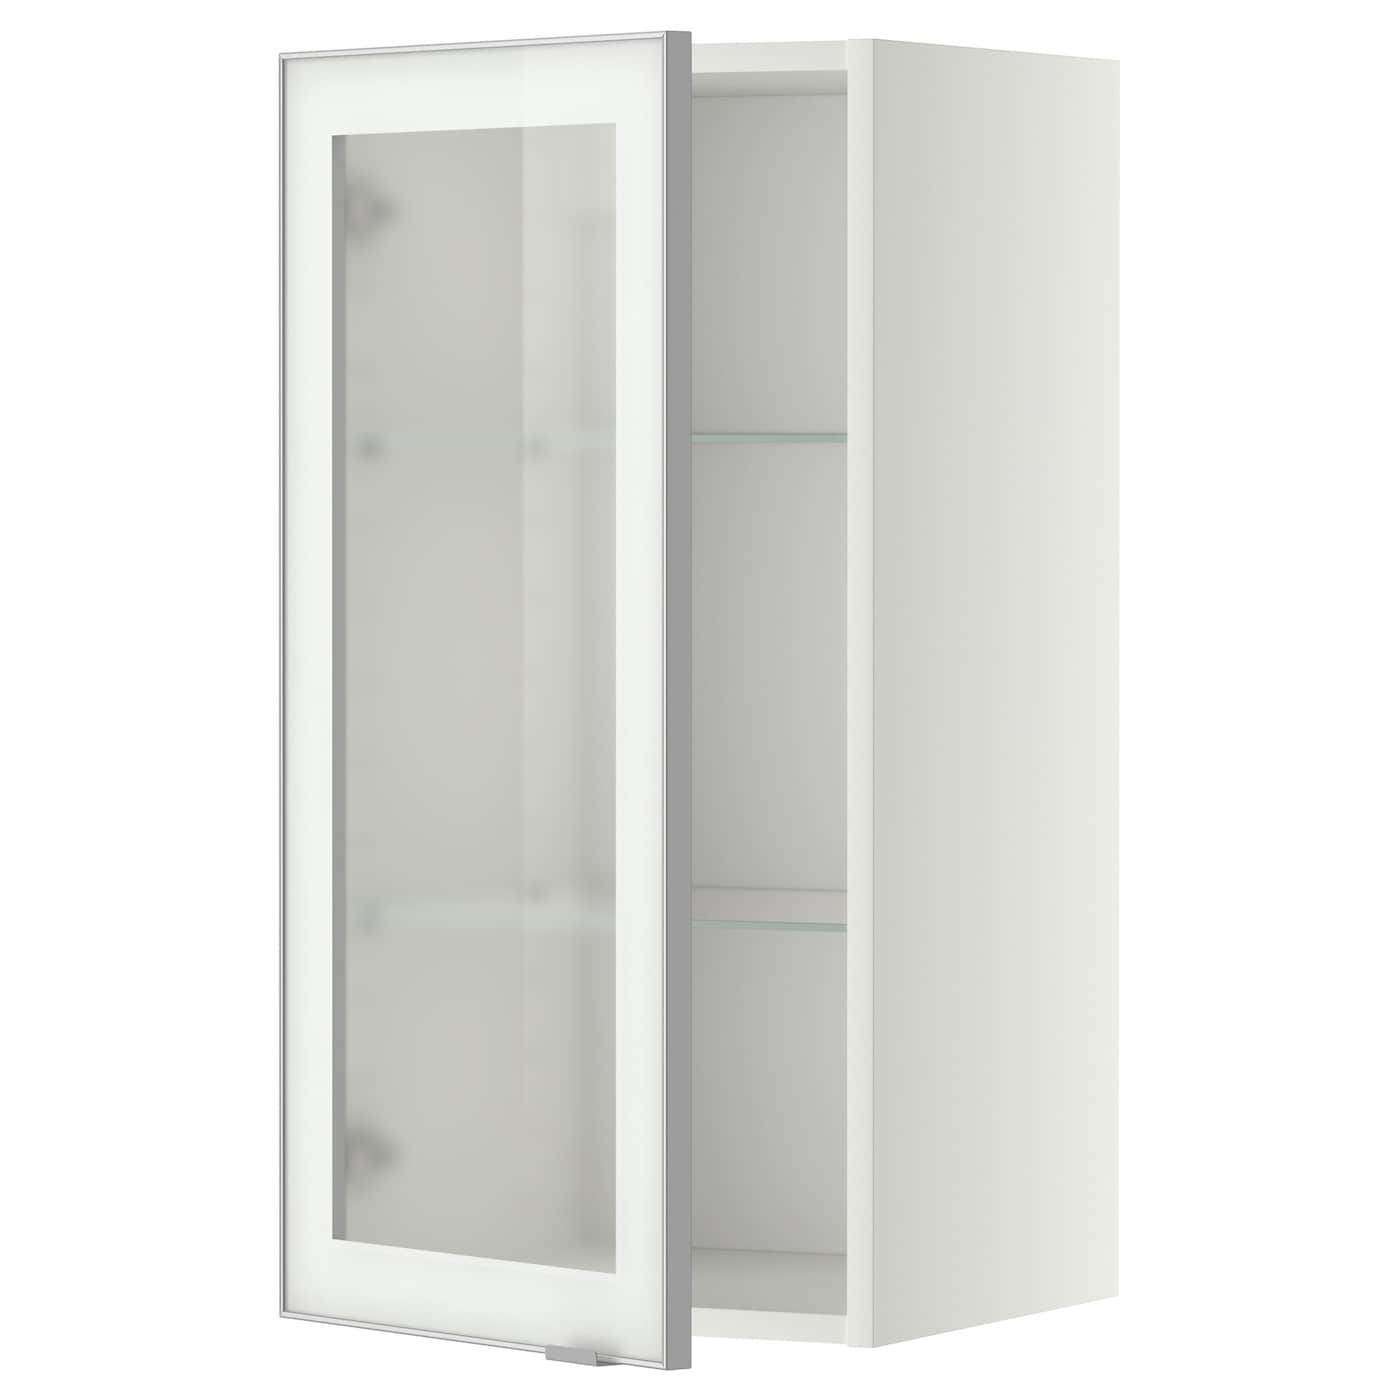 Metod wall cabinet w shelves glass door white jutis for Glass kitchen wall units